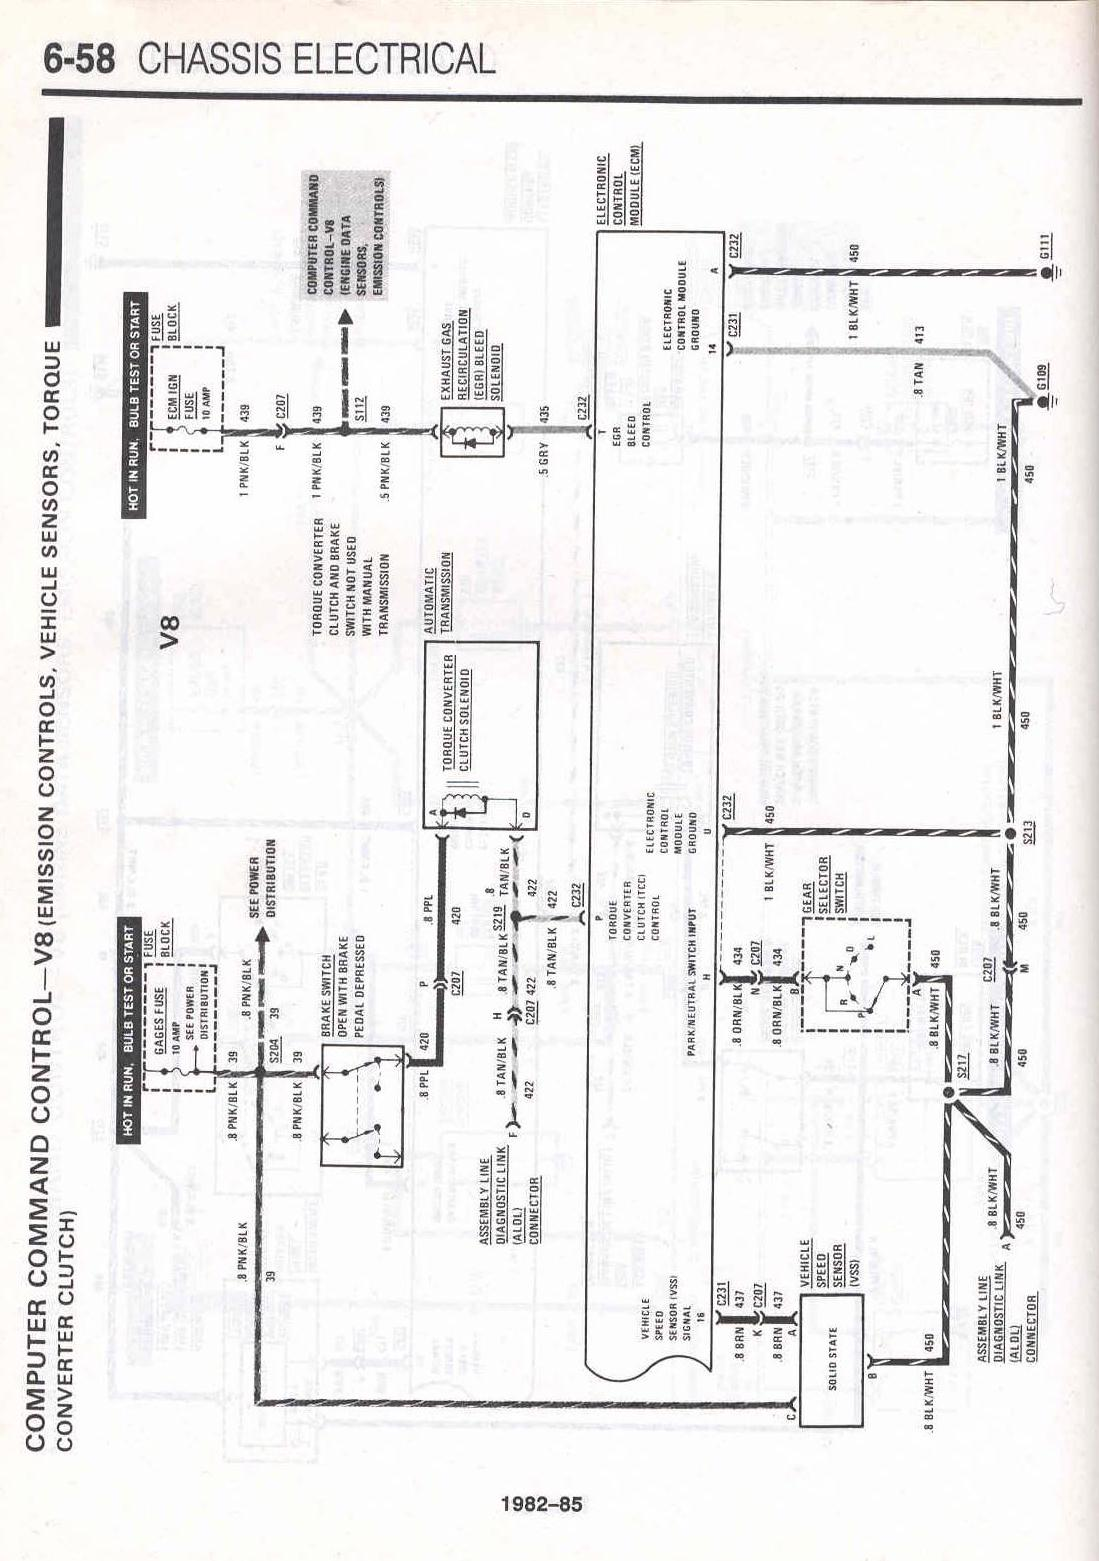 maxforce engine diagrams